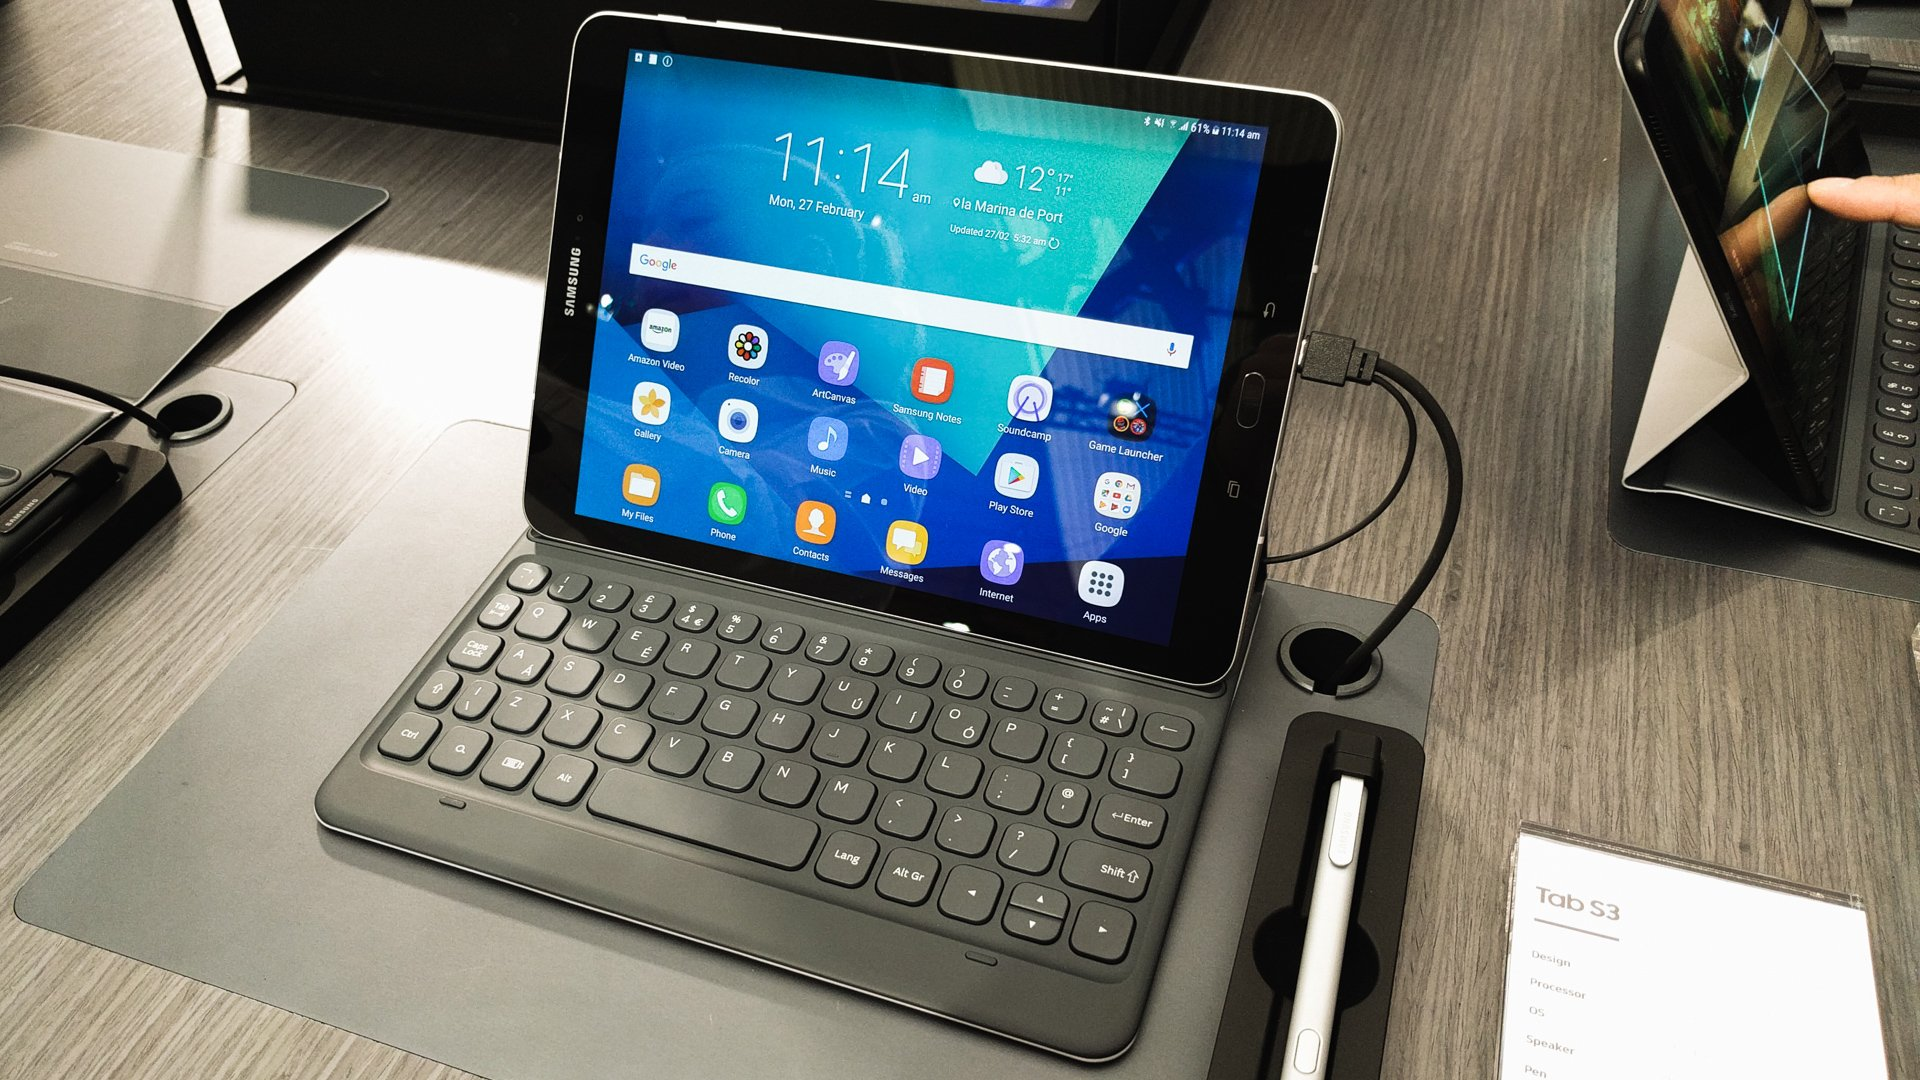 samsung galaxy tab s3 review a near perfect work tool hardware reviews androidpit. Black Bedroom Furniture Sets. Home Design Ideas